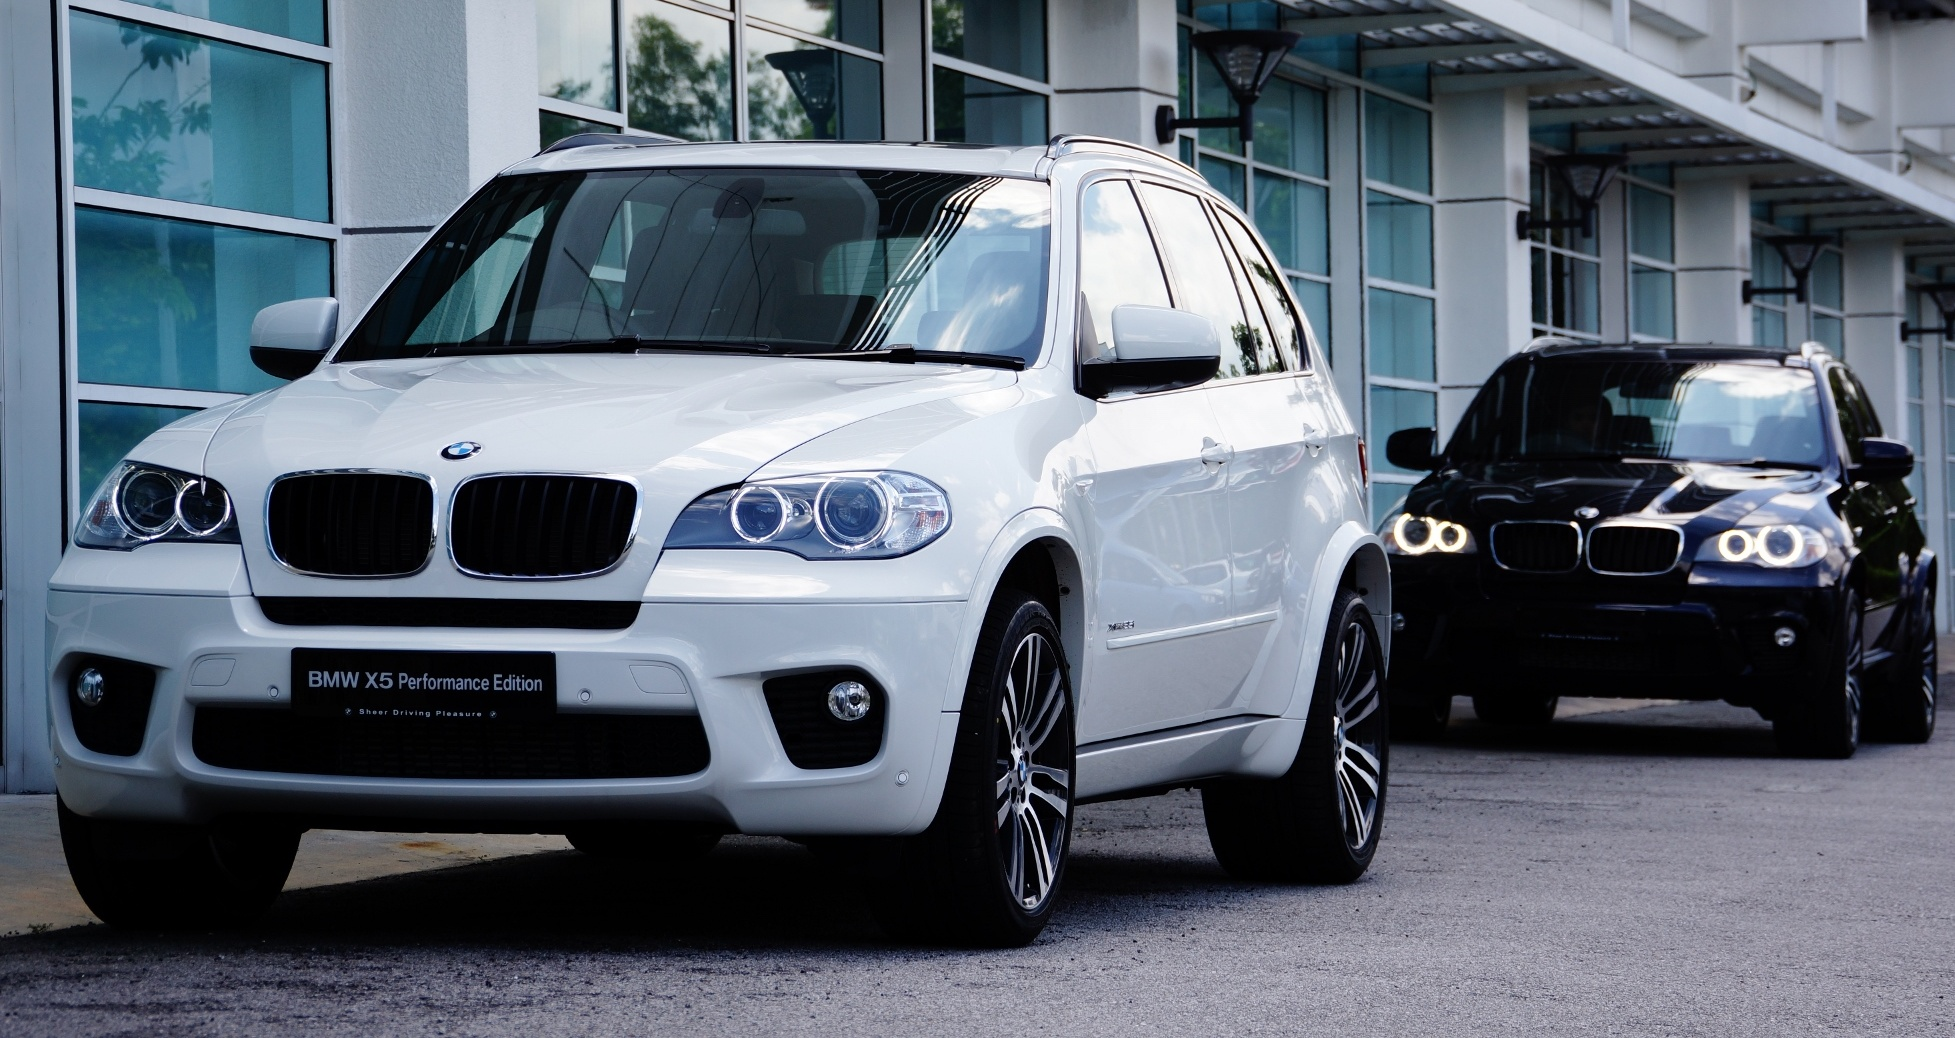 Bmw X5 Performance Edition Introduced Rm589k Image 159502